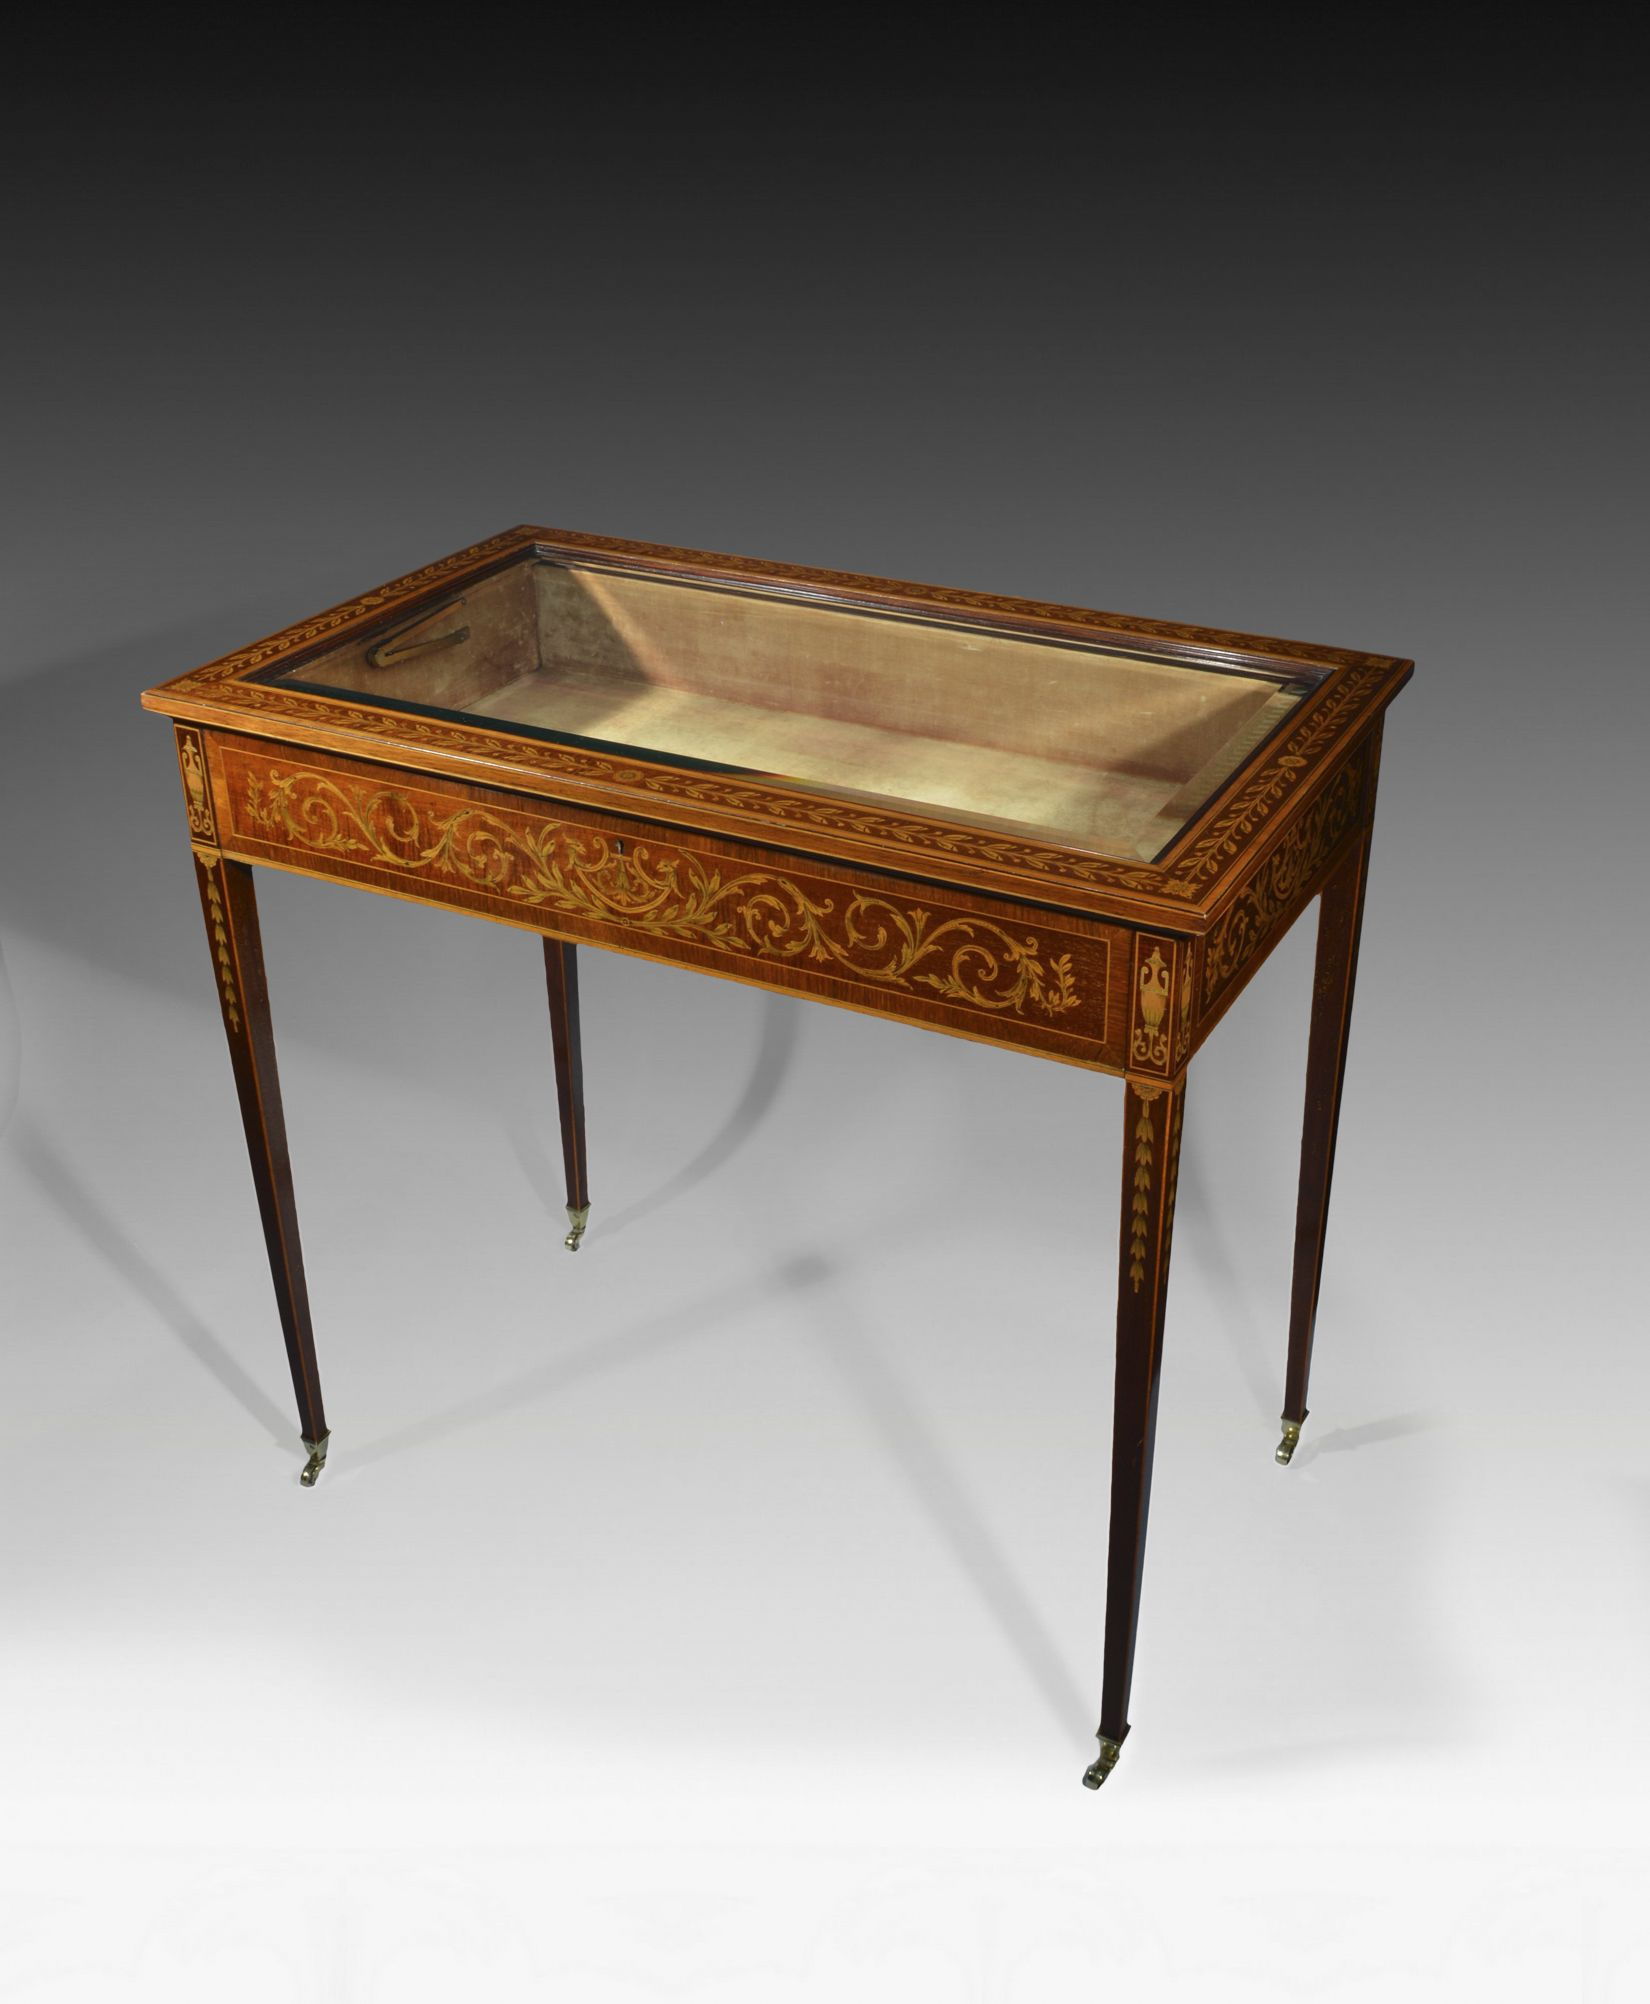 EDWARDS AND ROBERTS BIJOUTERIE TABLE Richard Gardner Antiques